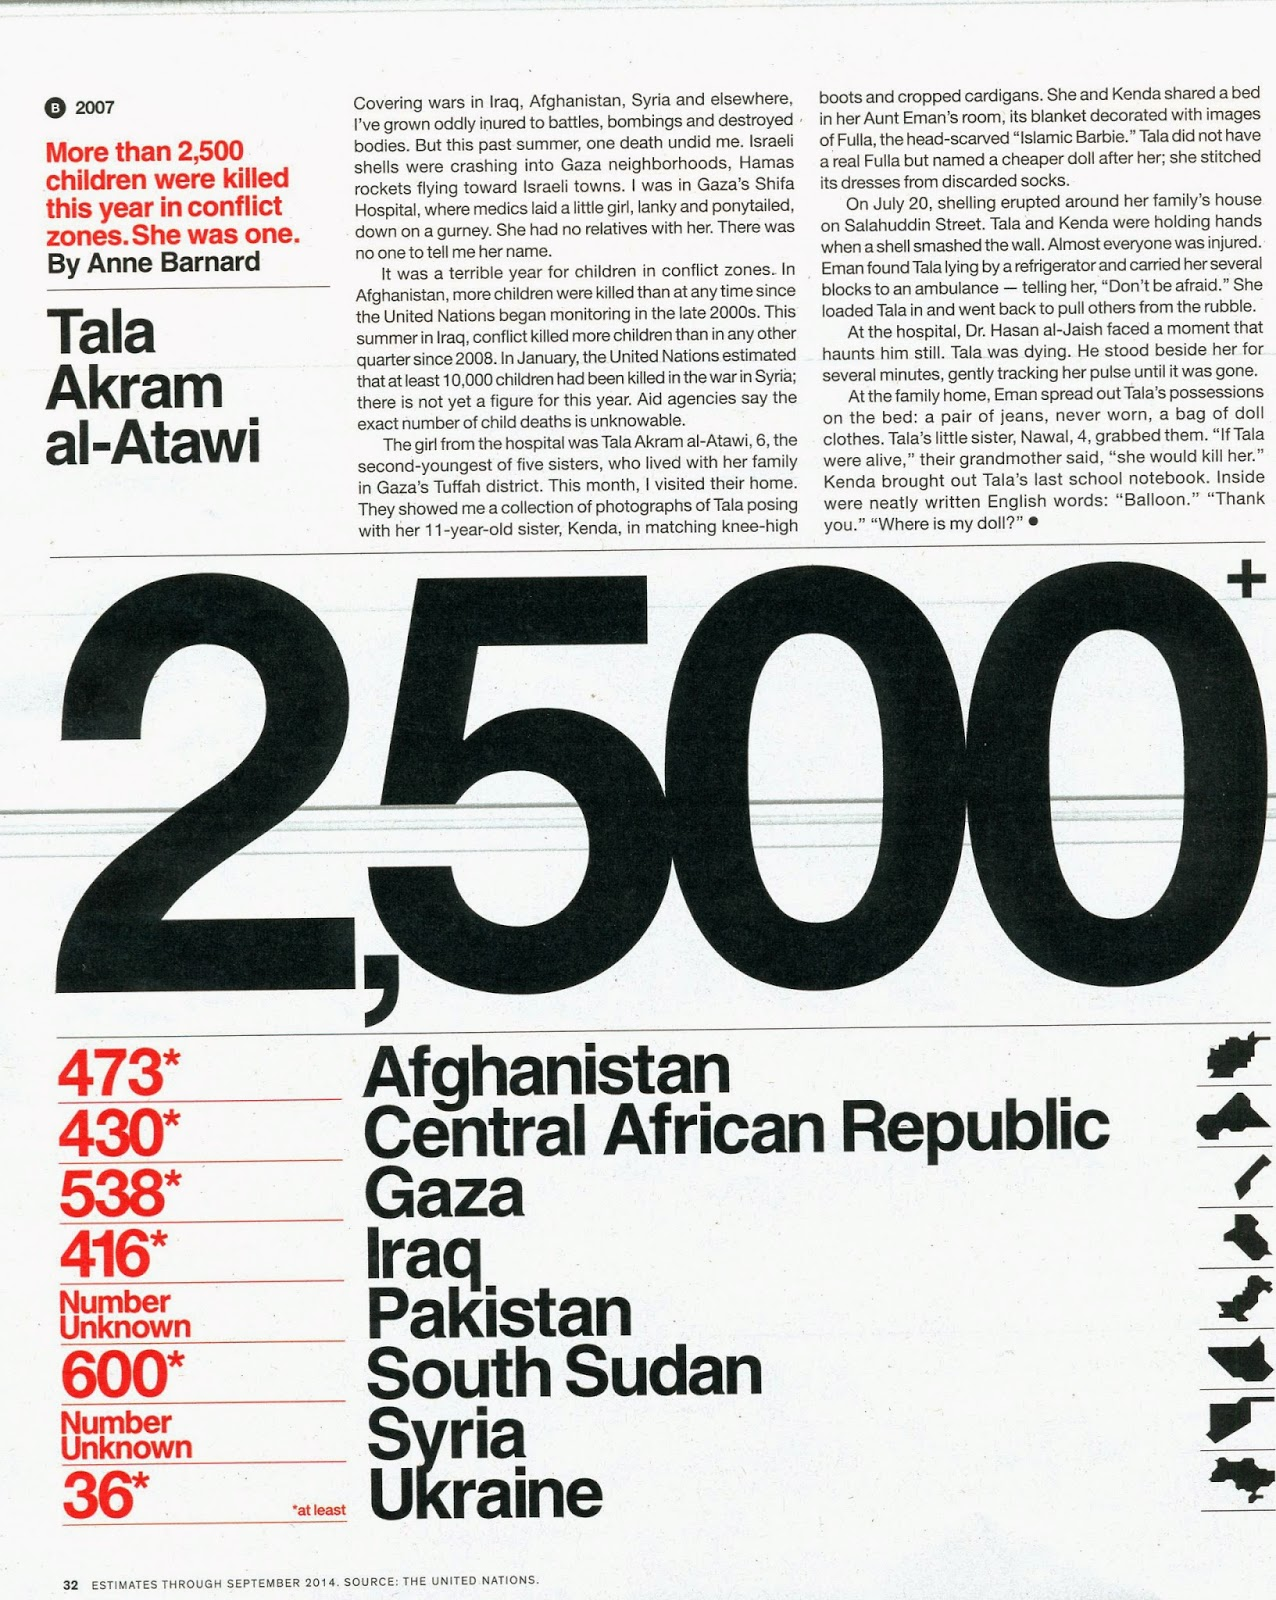 elder of ziyon news from looking at this page one would get the impression that except for south sudan more children were killed in gaza than in any other conflict this year